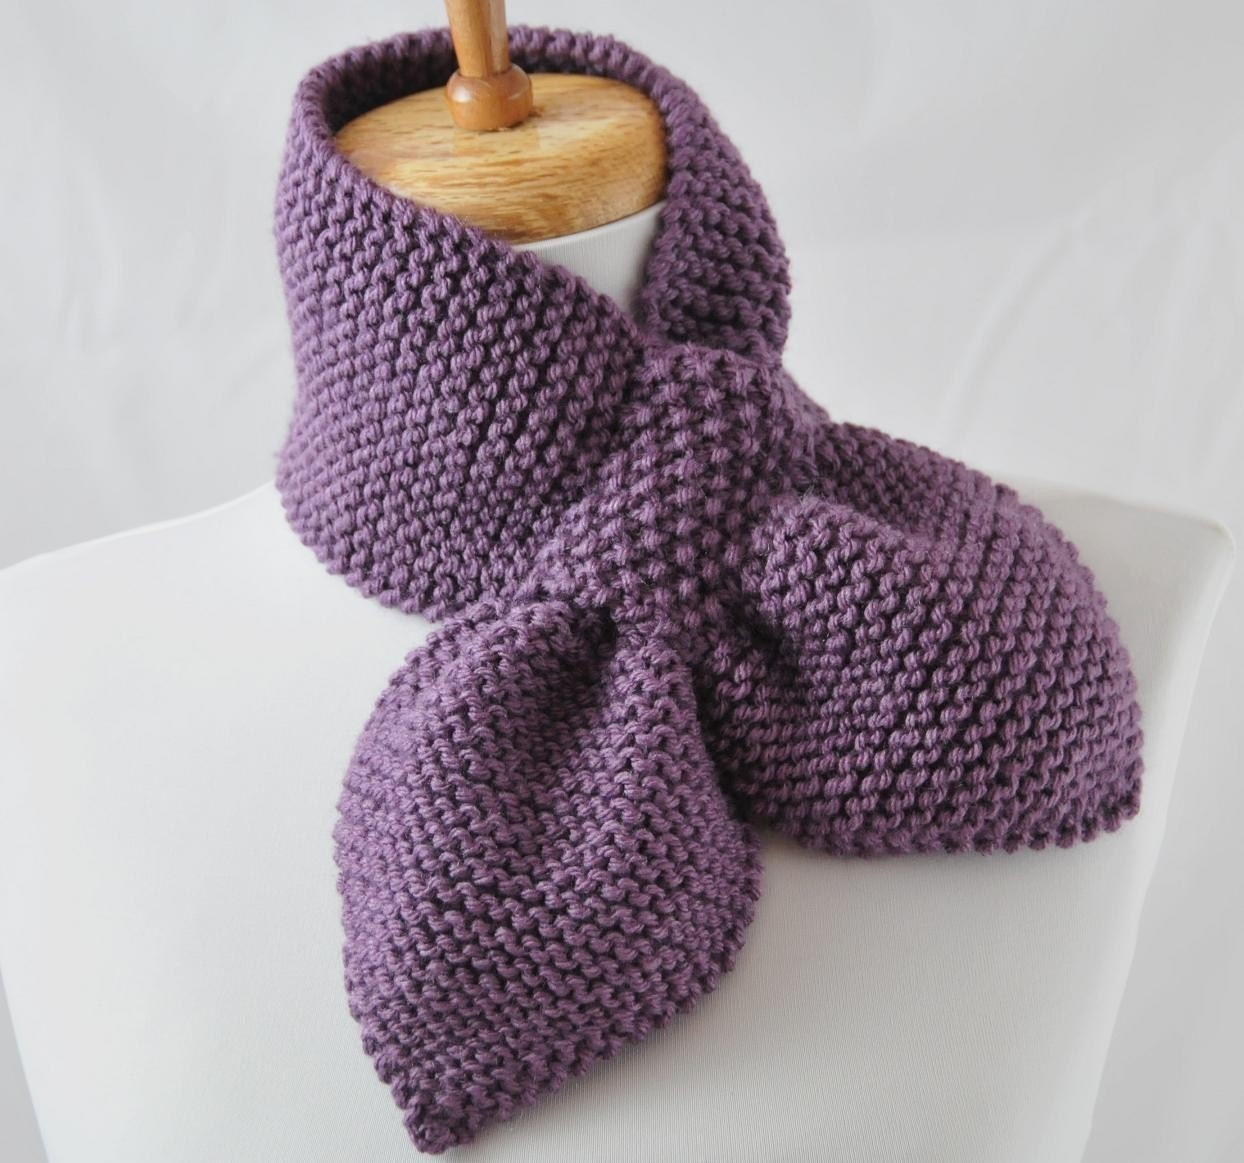 Knitting Patterns Scarf Free : 301 Moved Permanently